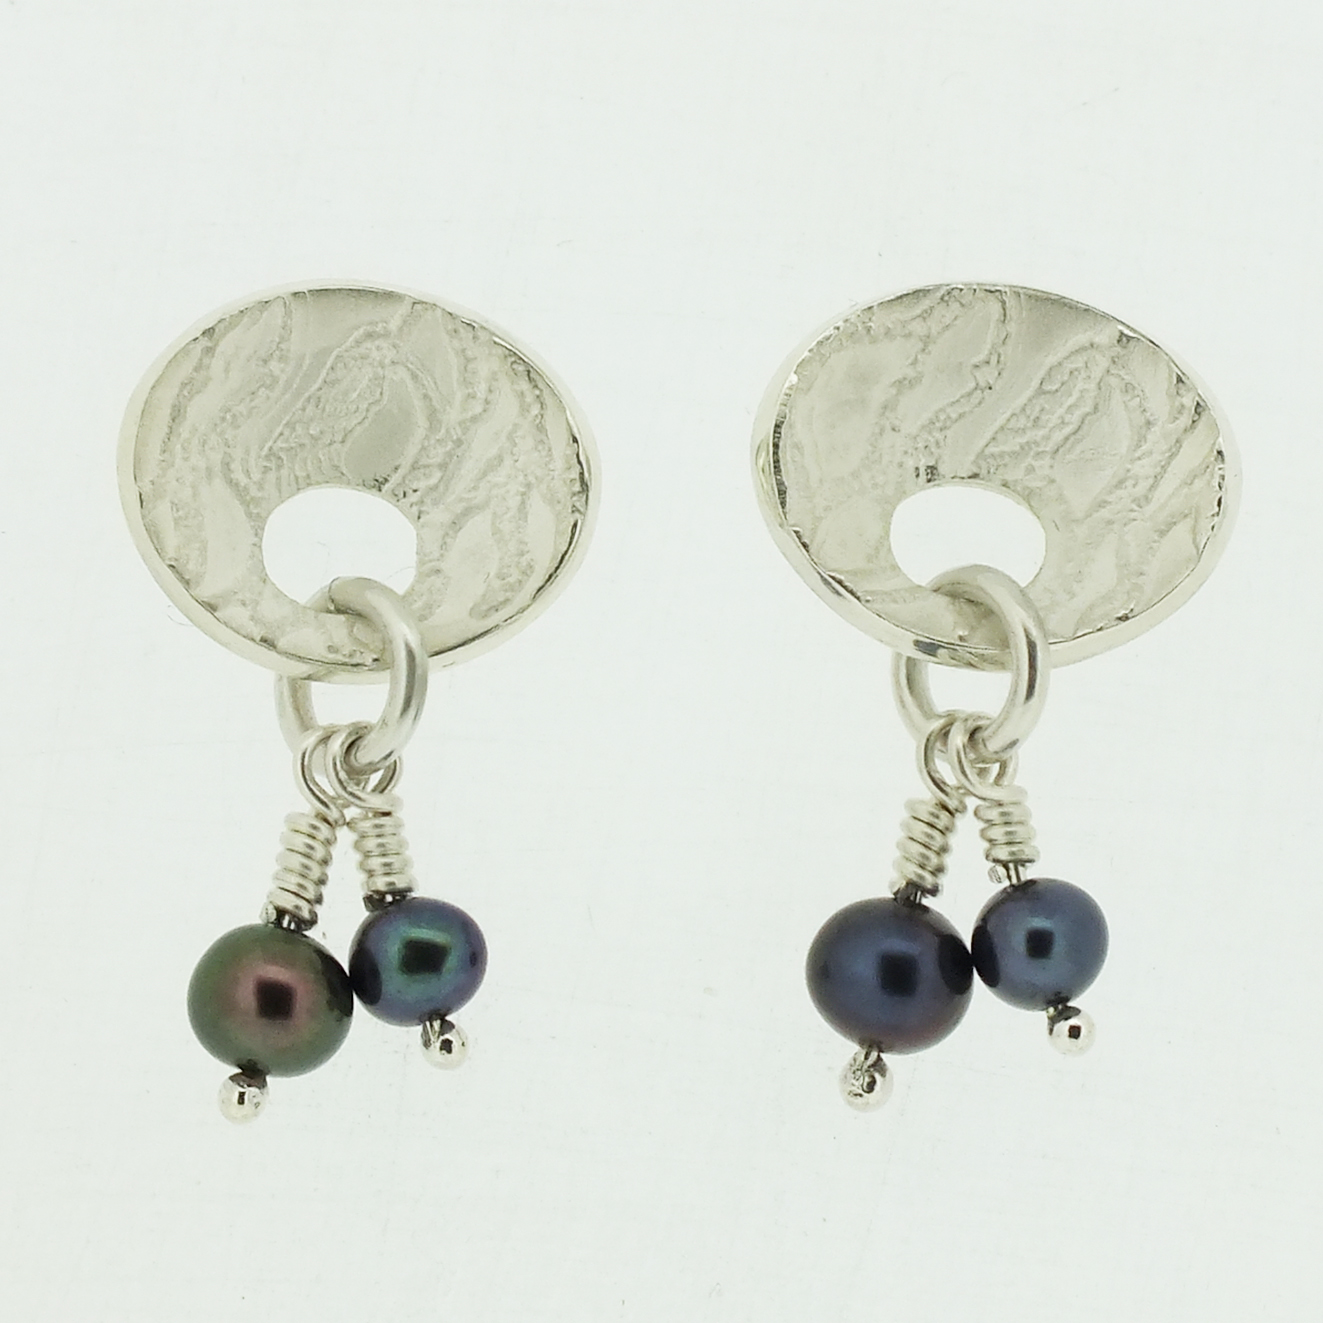 Concave oval textured silver stud earrings with black pearl drop